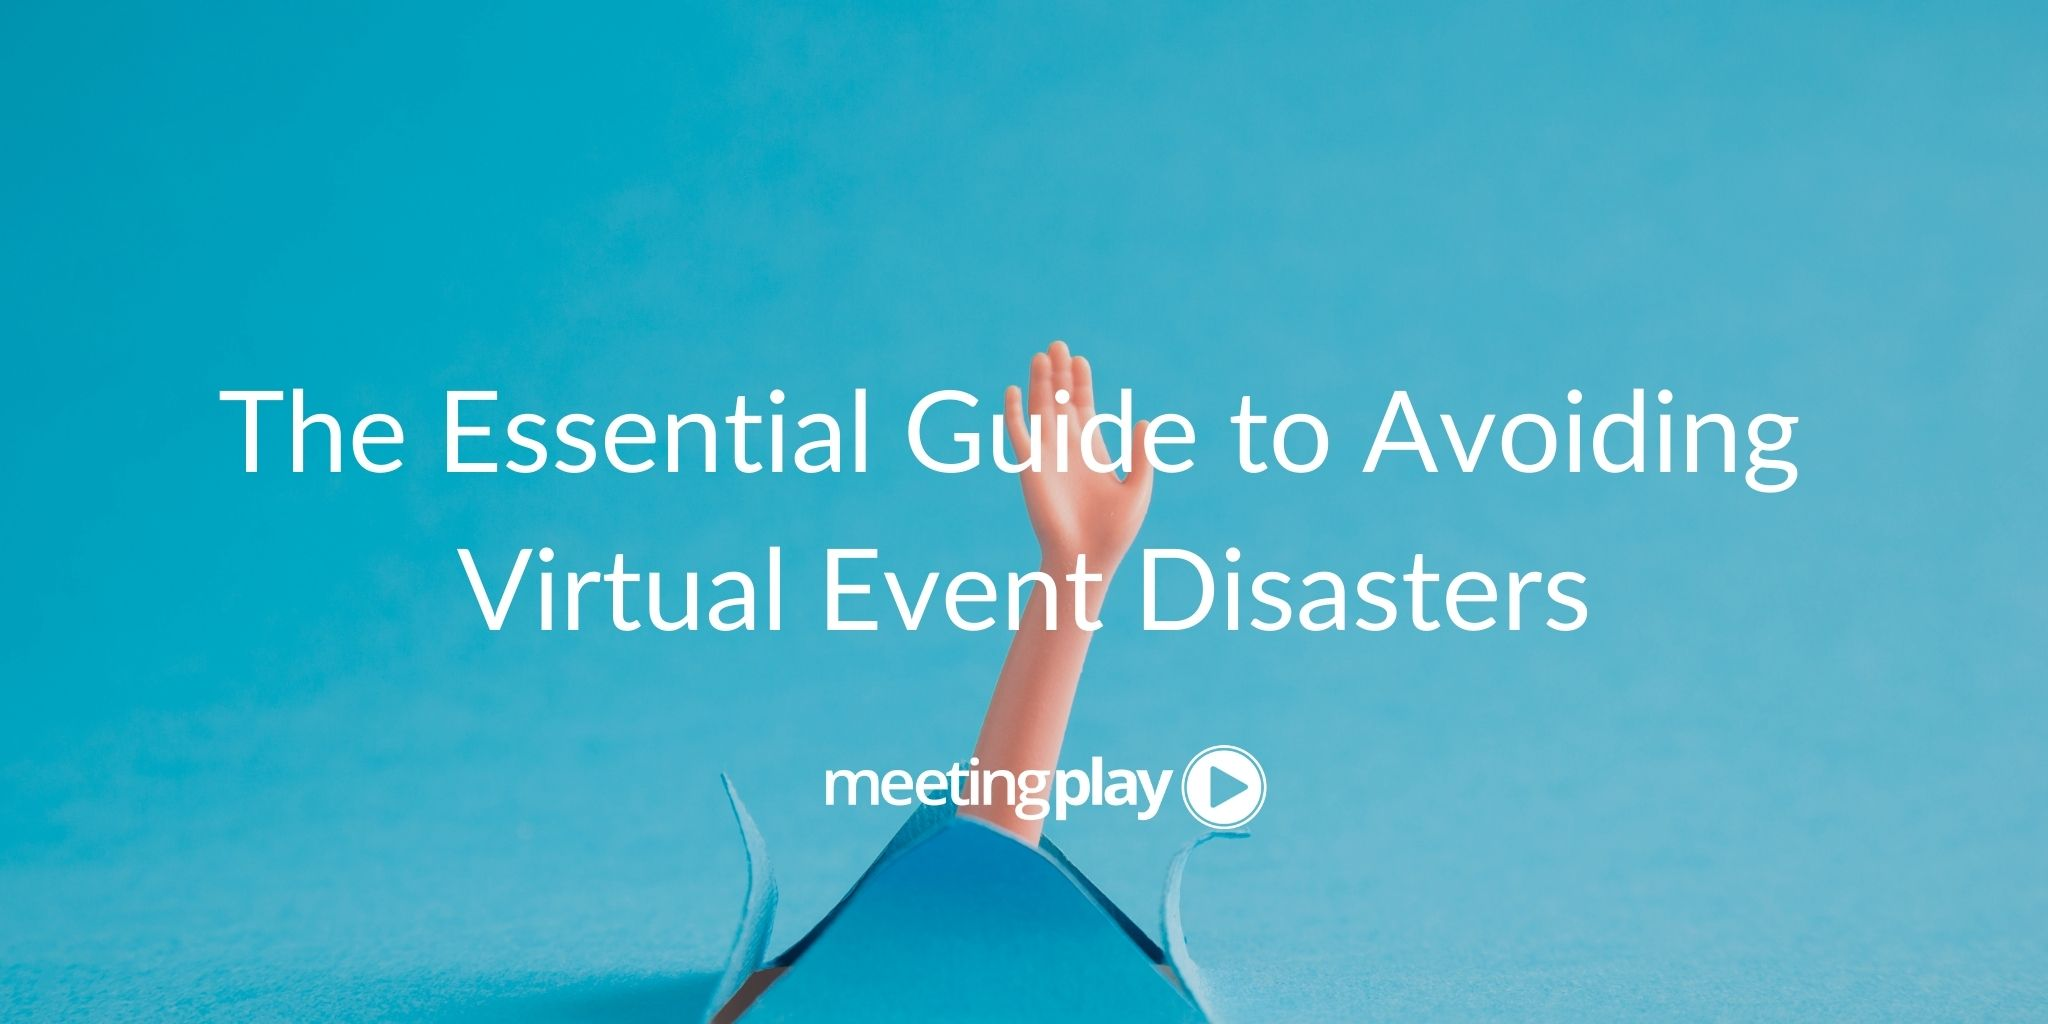 The Essential Guide to Avoiding Virtual Event Disasters